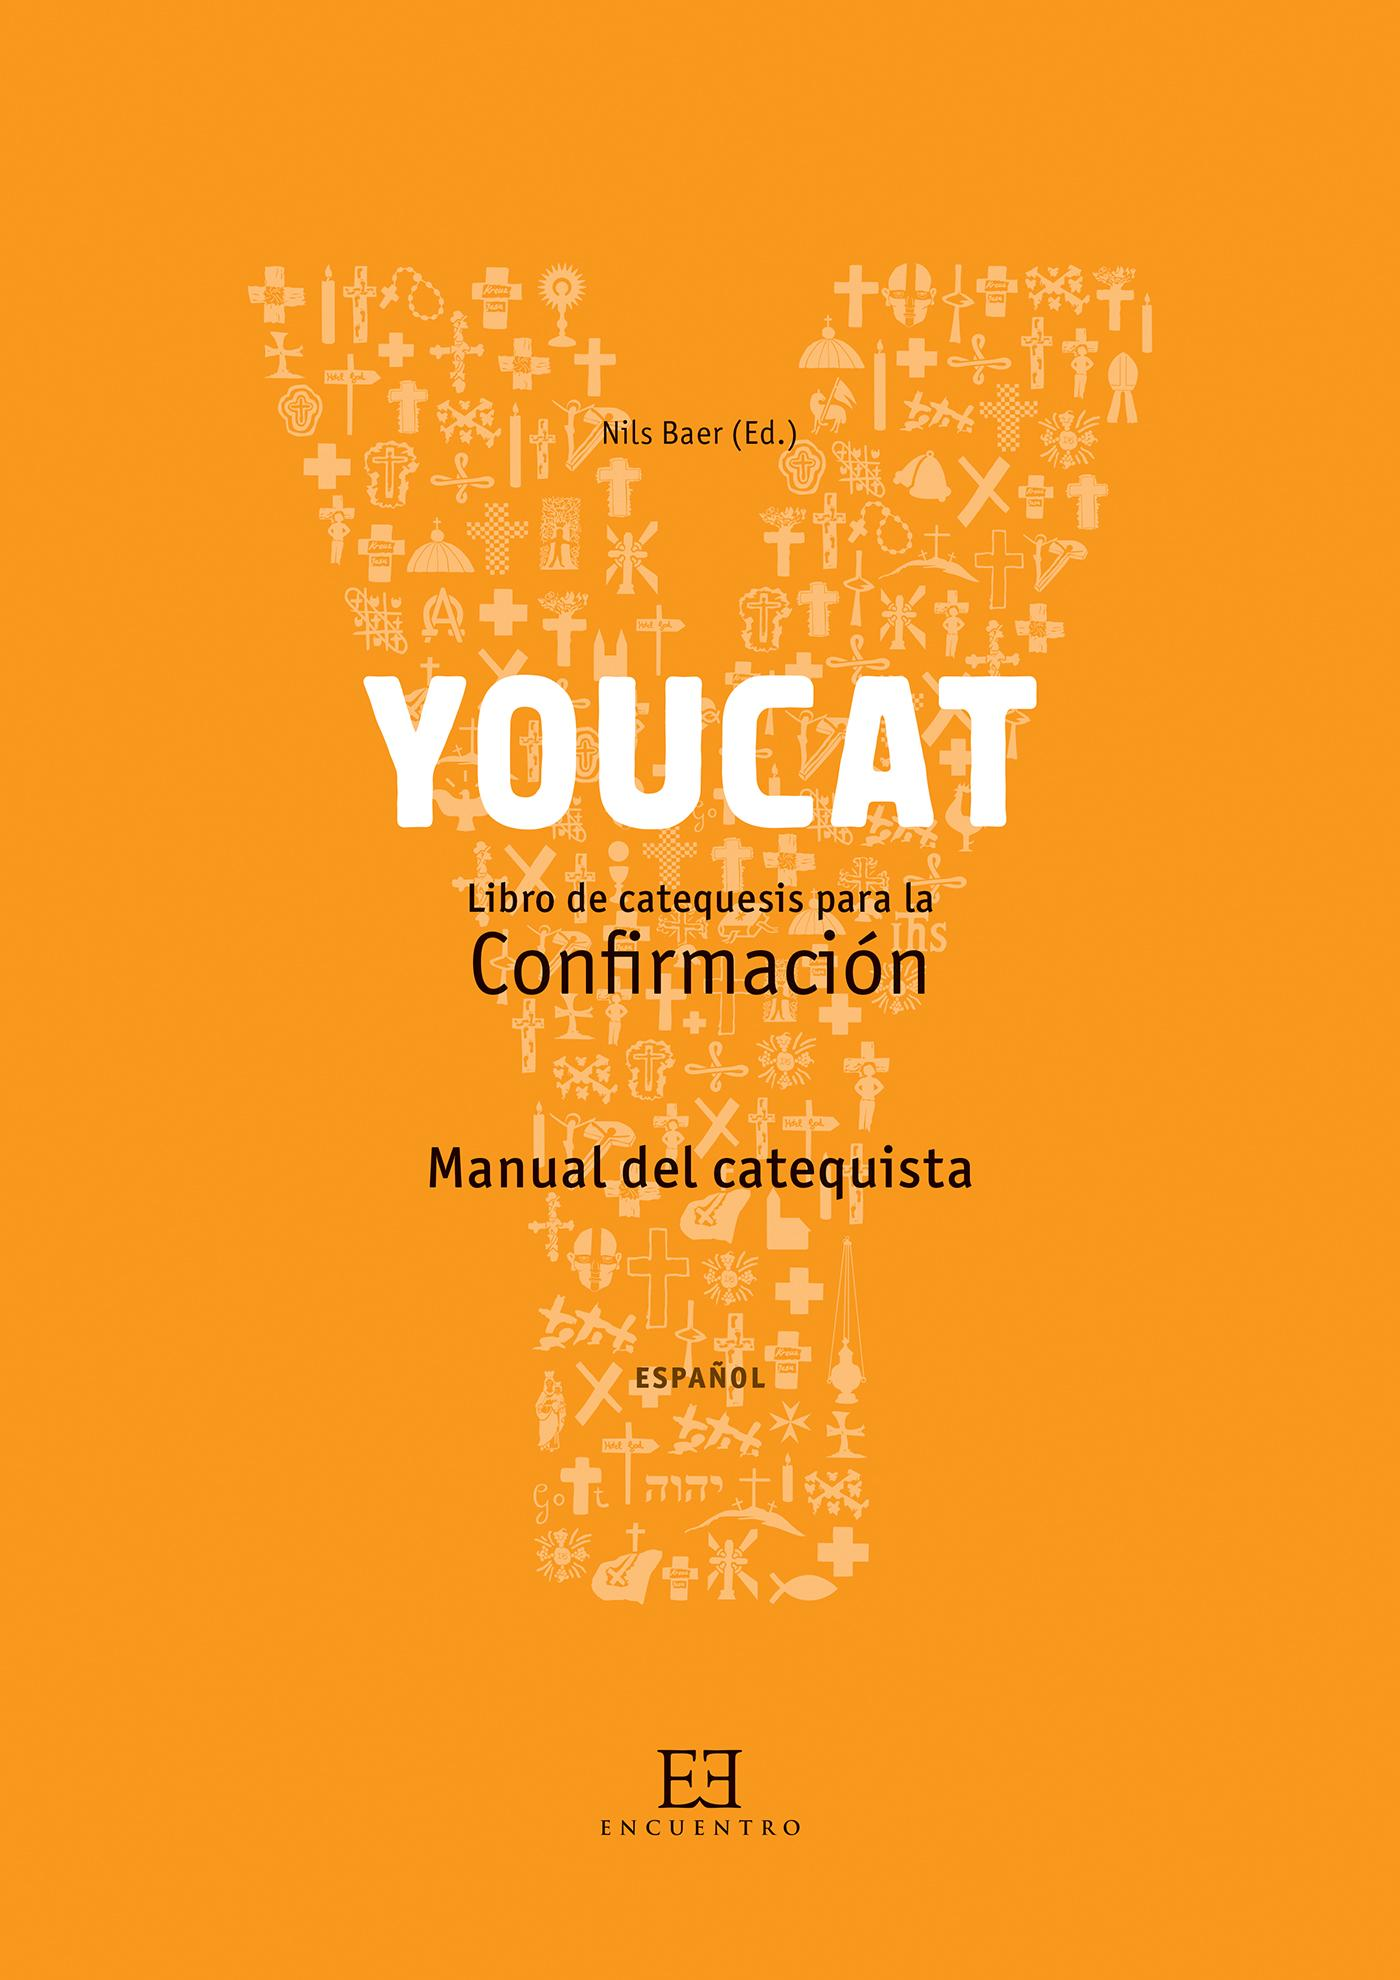 MANUAL DEL CATEQUISTA YOUCAT CONFIRMACIÓN